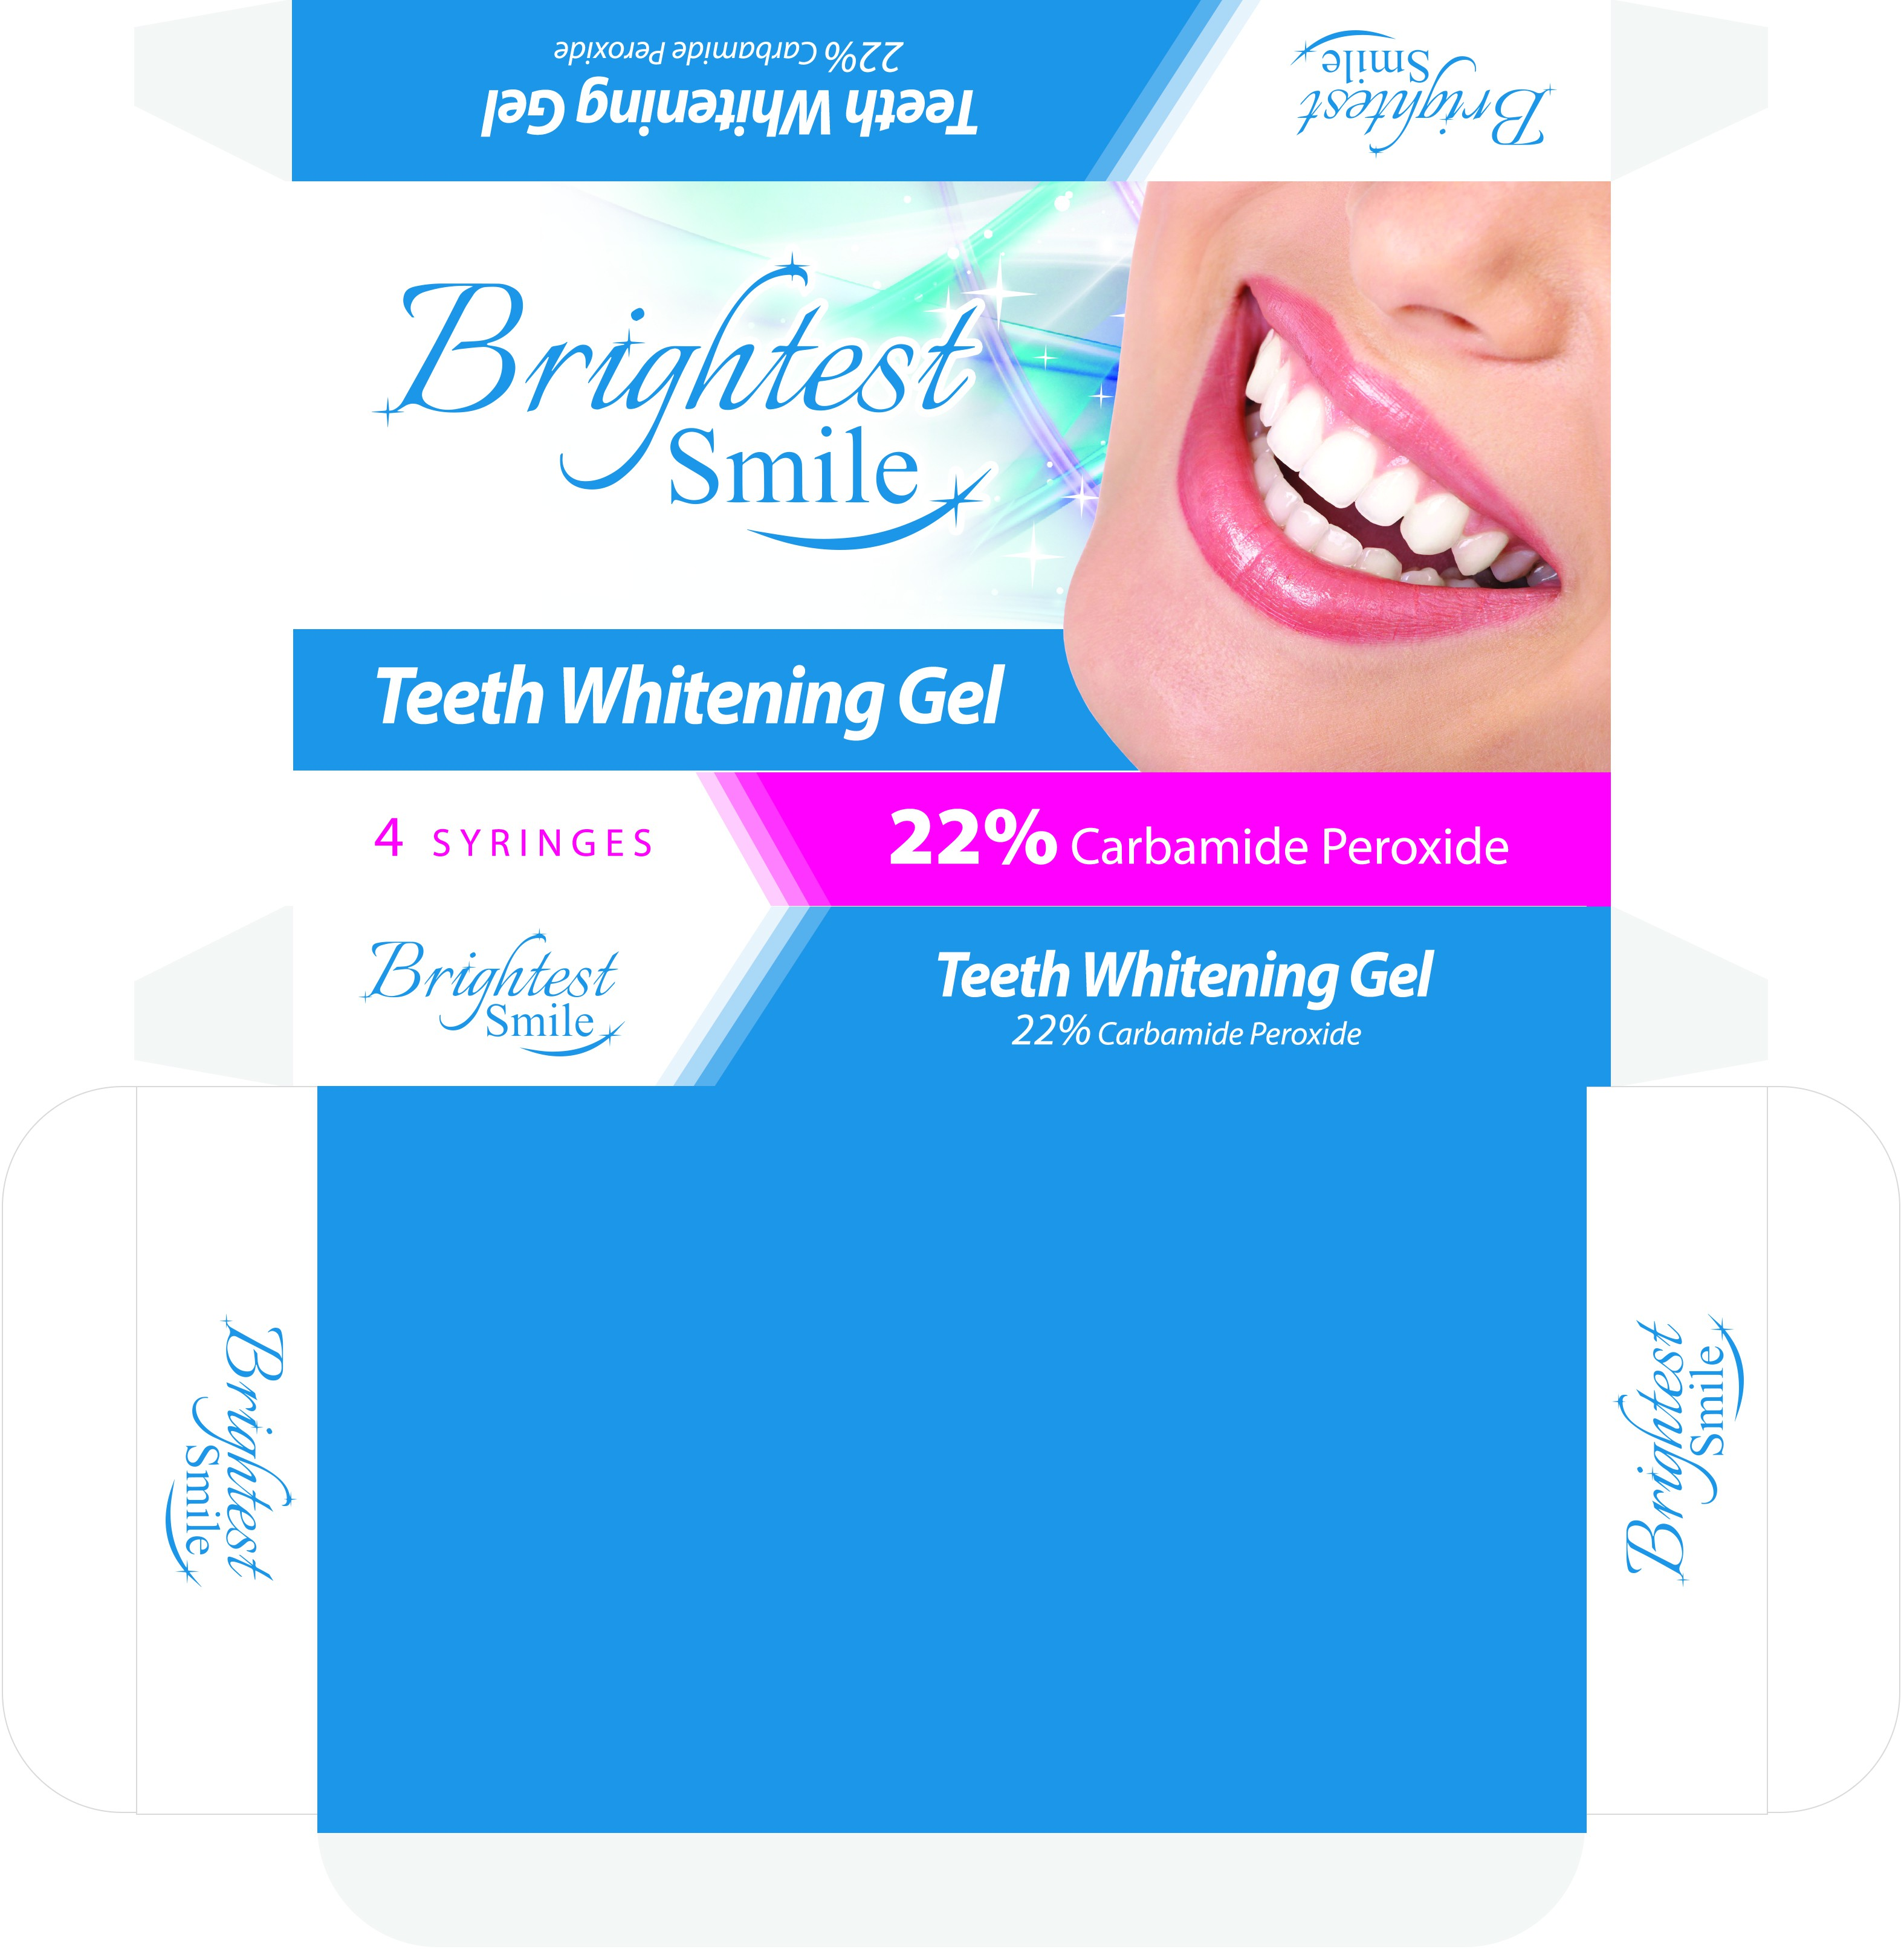 Develop a modern and expressive package for professional dental whitening agent